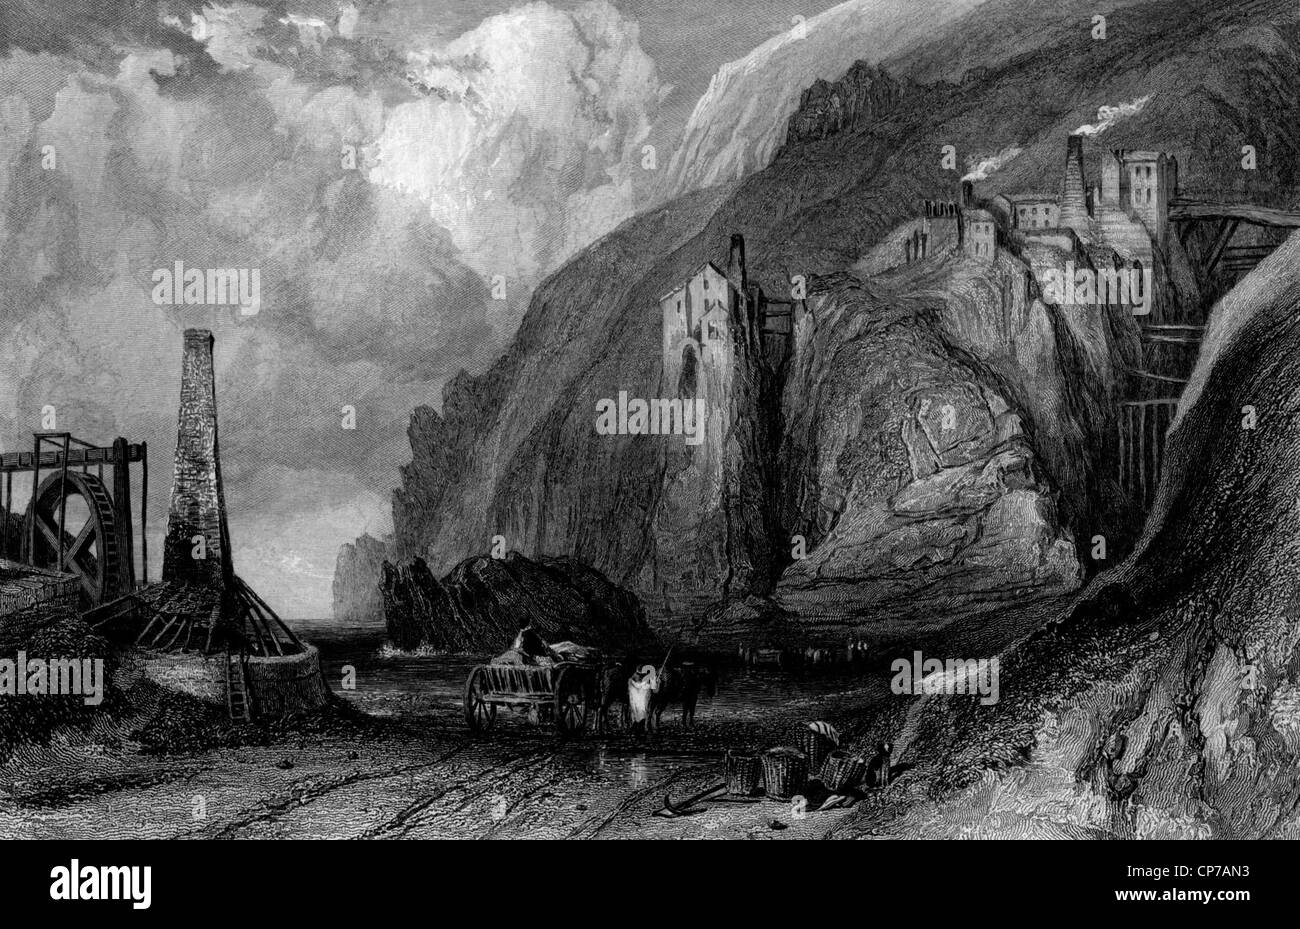 Scenic view of Botallack village coastal tin mine, Cornwall, England, Engraved by William Miller in 1836. - Stock Image